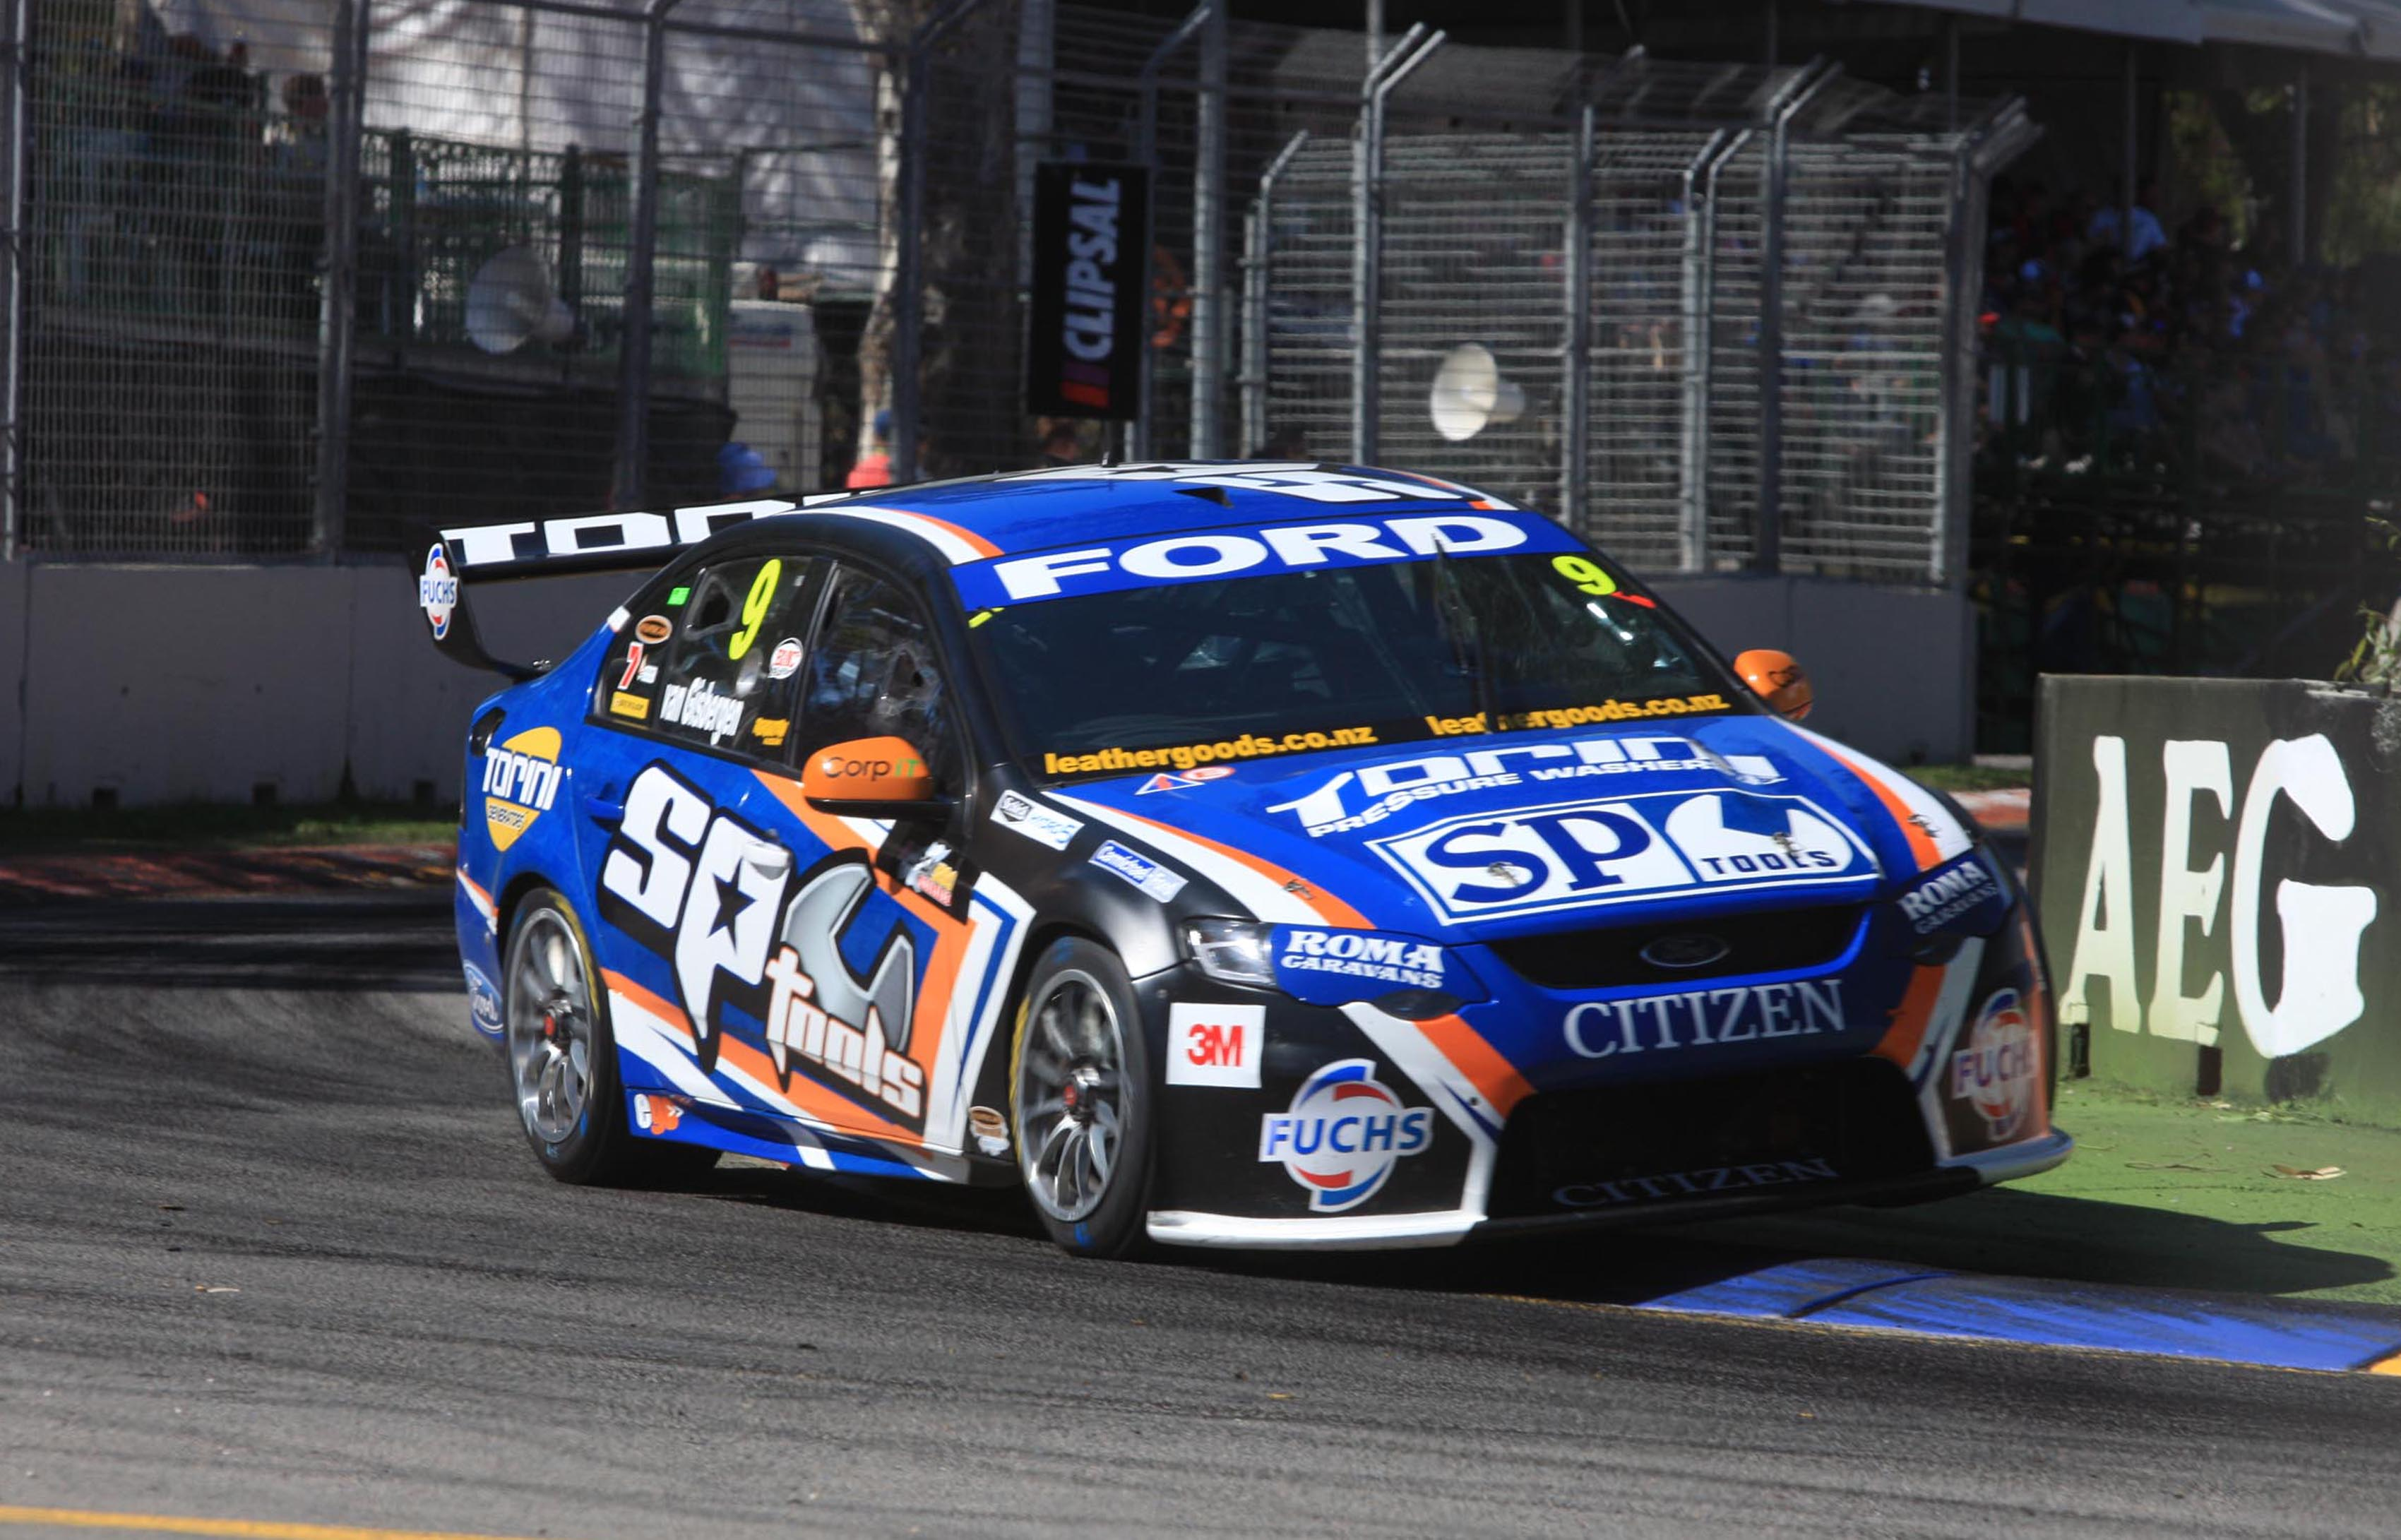 V8 Supercars Wallpapers HD Download 3400x2181